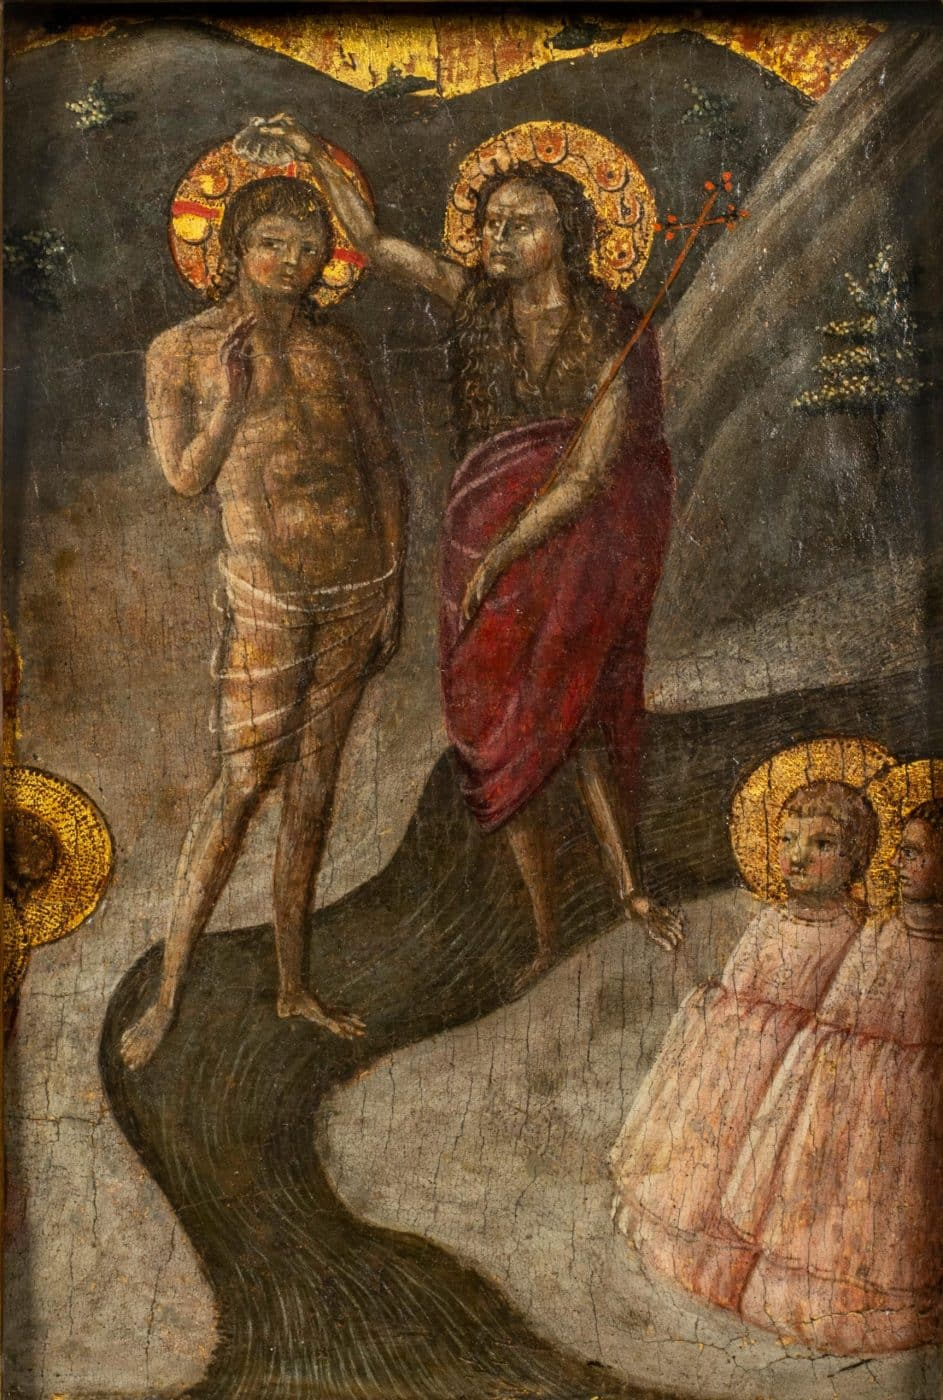 Baptism of Christ, ca. 1450, by Borghese di Piero, offered by Robert Simon Fine Art